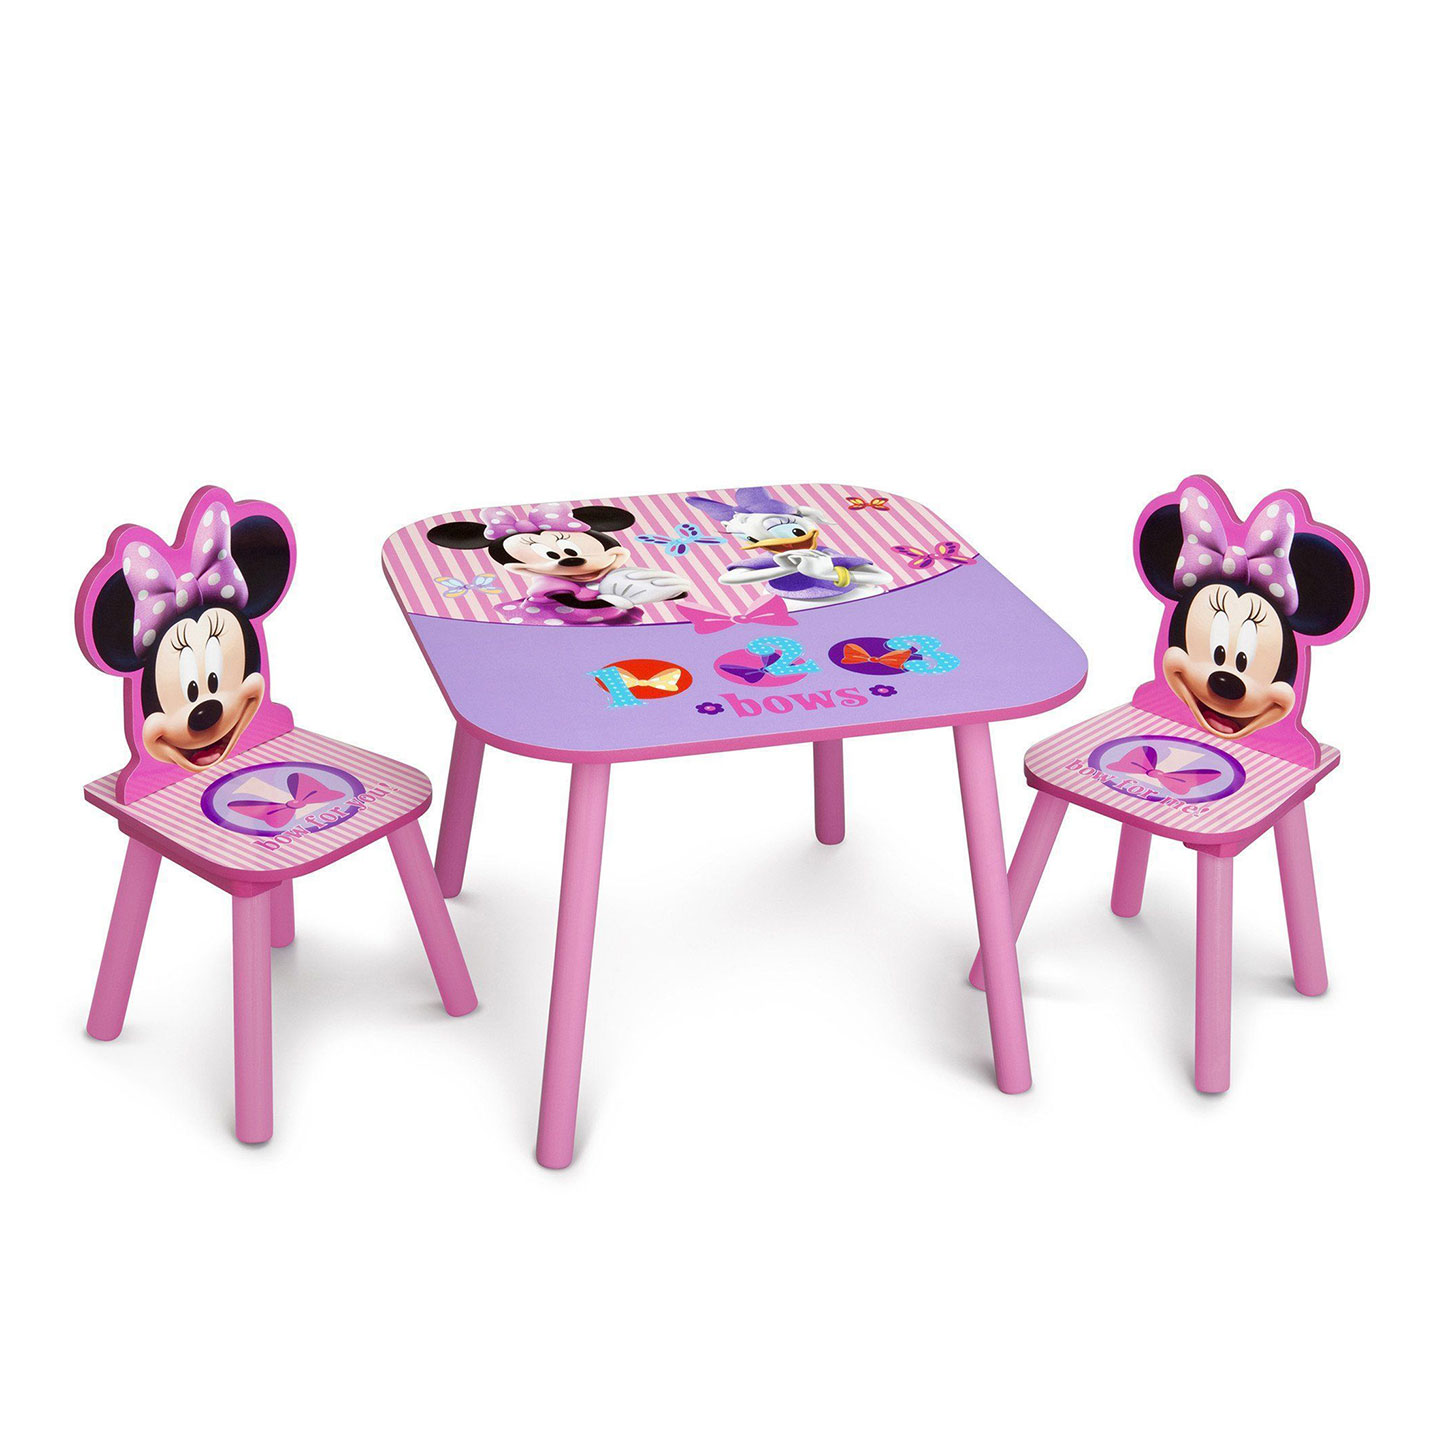 Disney Minnie Mouse Activity Table and Chairs Set by Generic